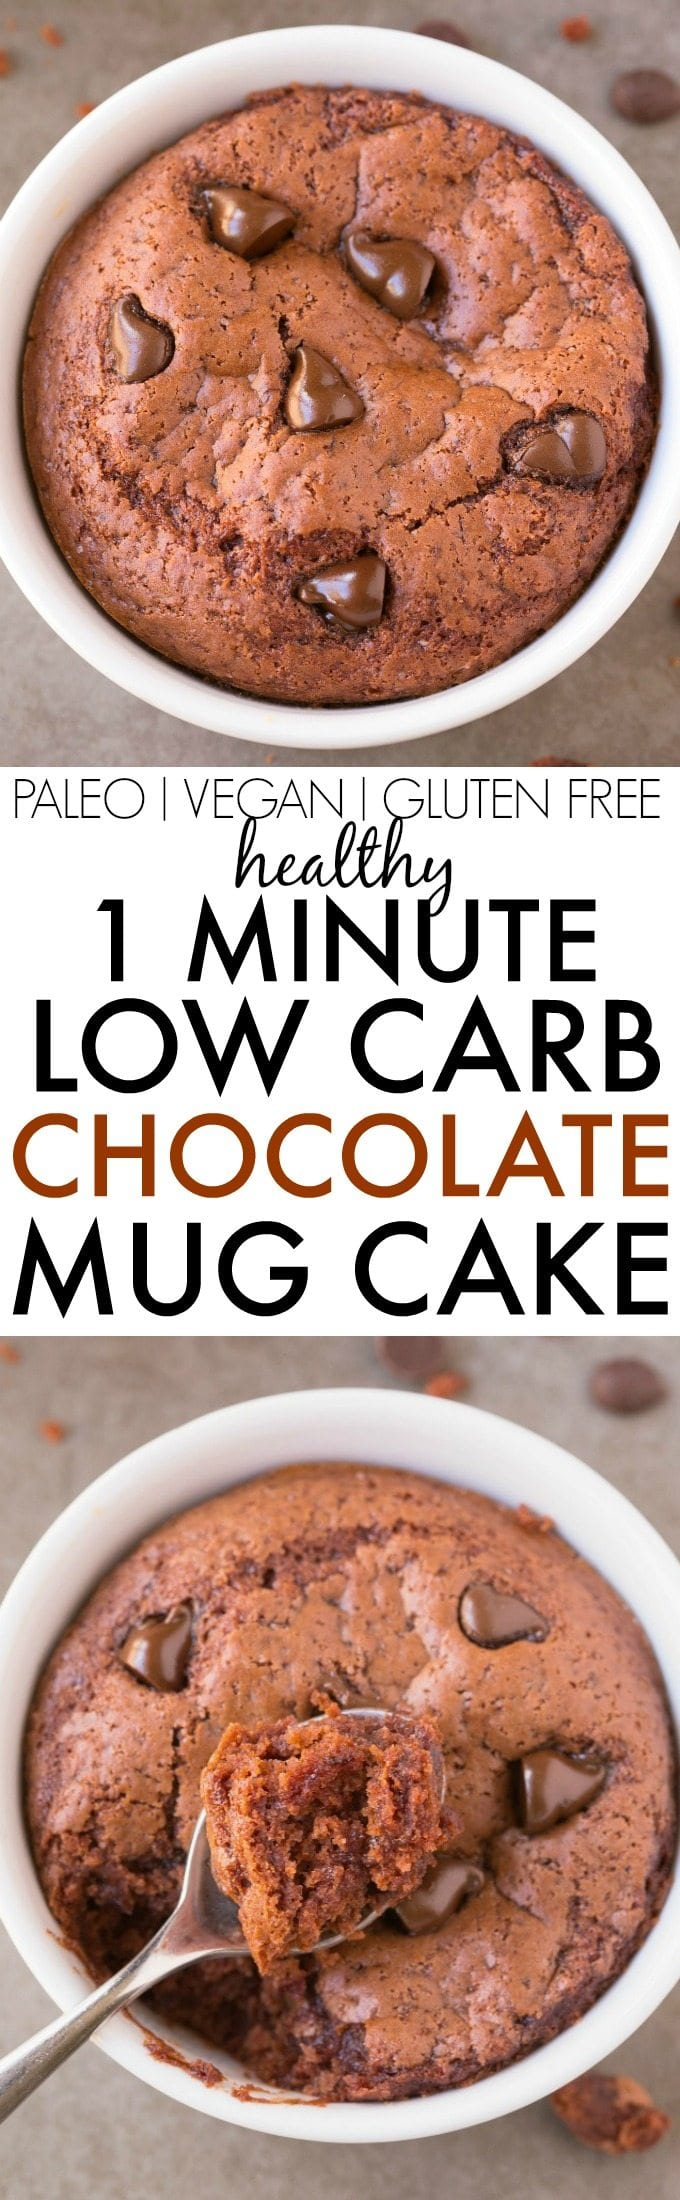 Healthy 1 Minute LOW CARB Chocolate Mug Cake- Light, fluffy and moist in the inside! Packed full of protein and no sugar whatsoever! {vegan, gluten free, paleo recipe}- thebigmansworld.com